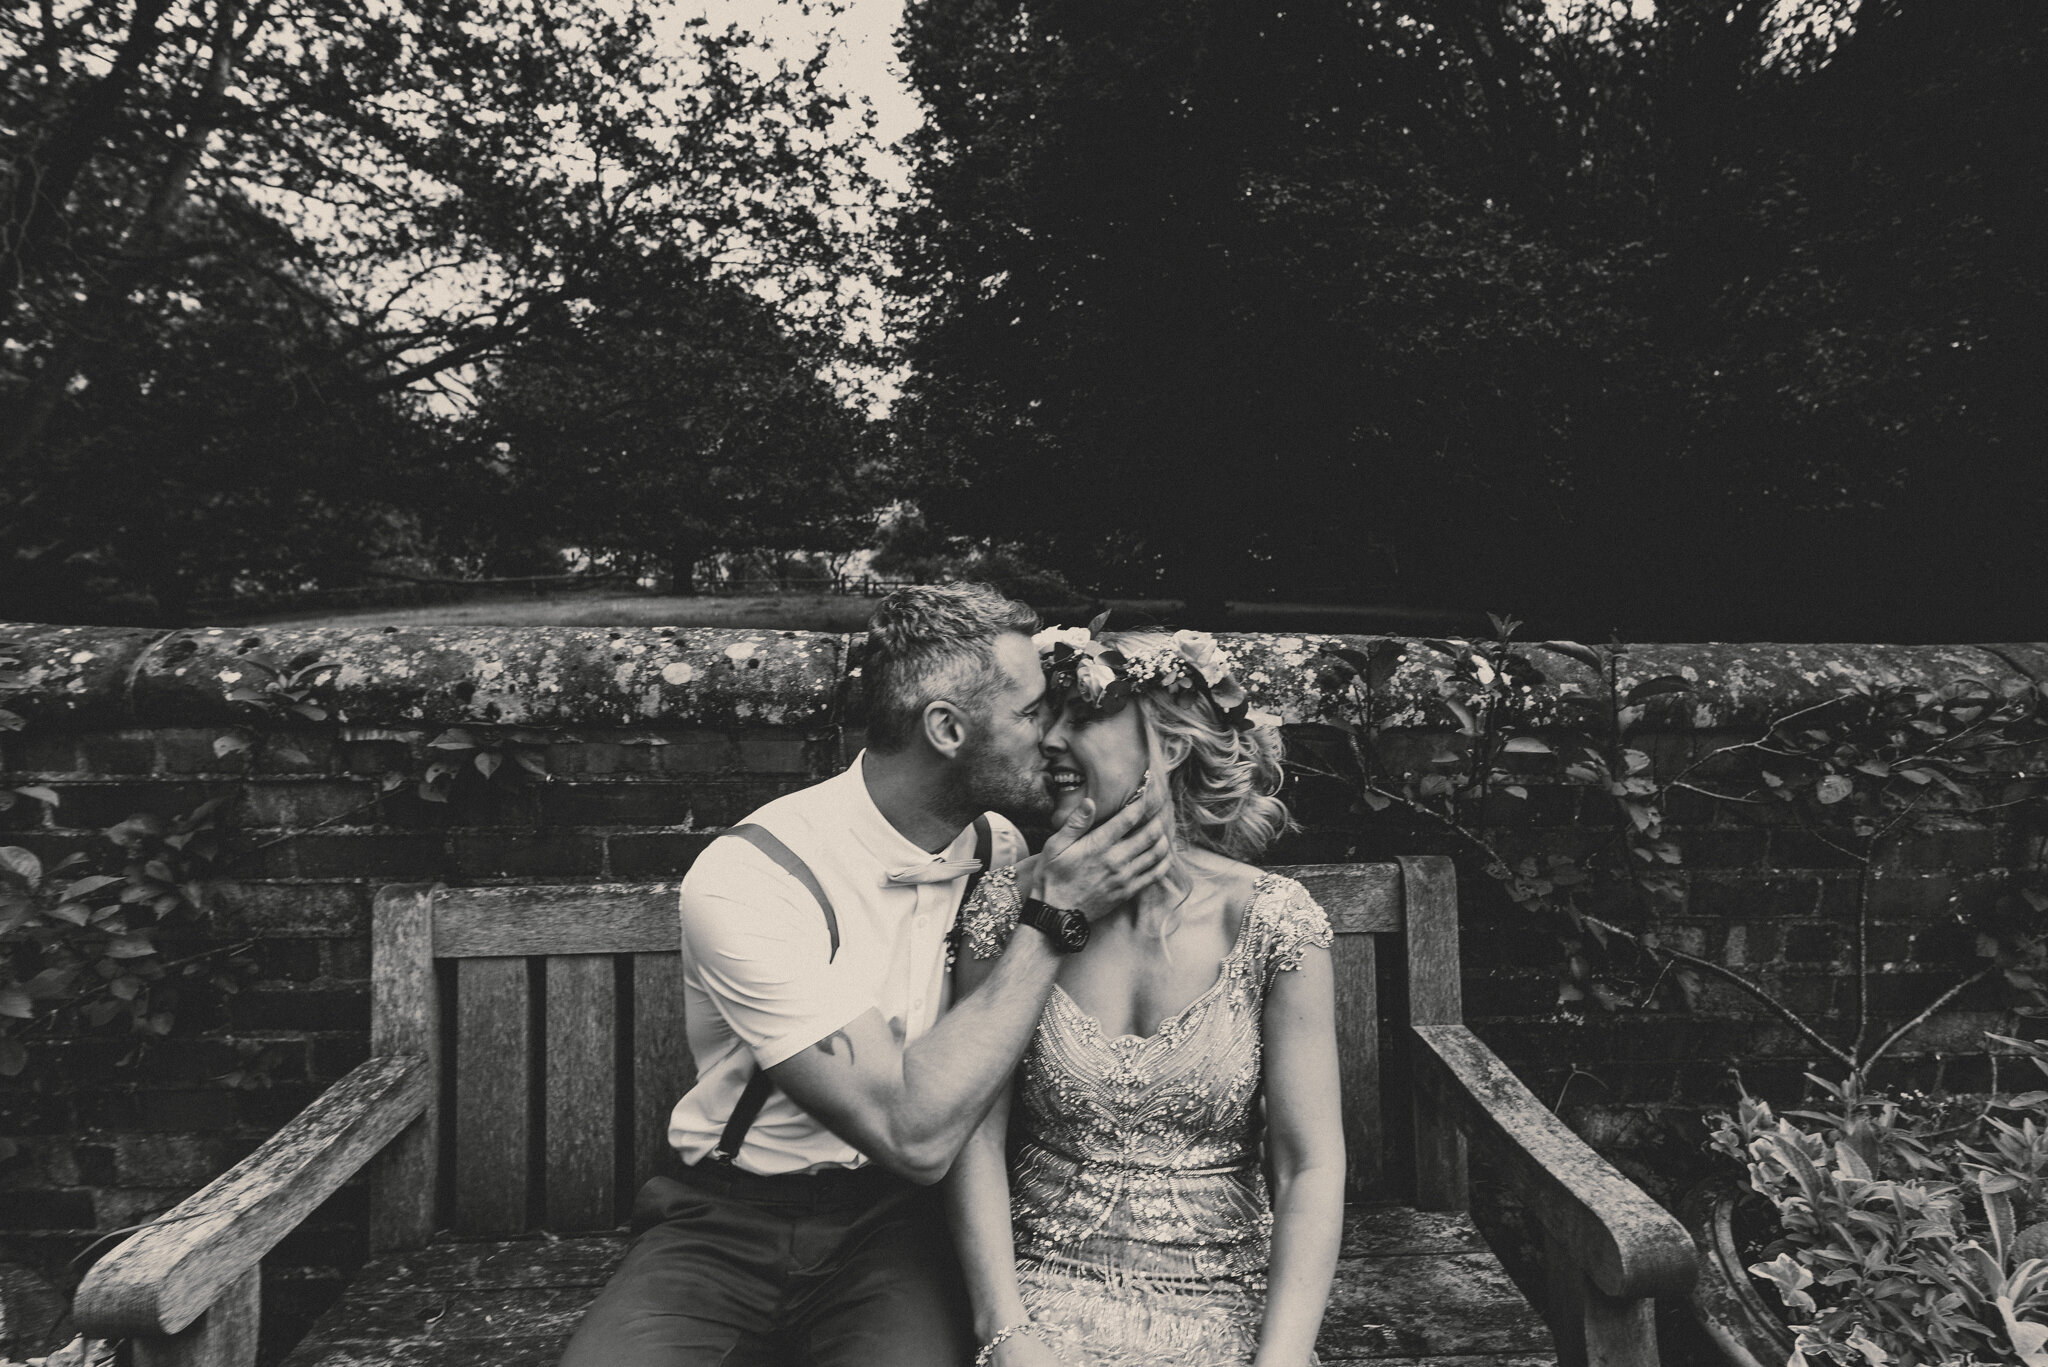 Festival-Barn-Wedding-Shropshire-Pimhill-Barn-Wedding-PhotographyLisa and Rich-306.jpg